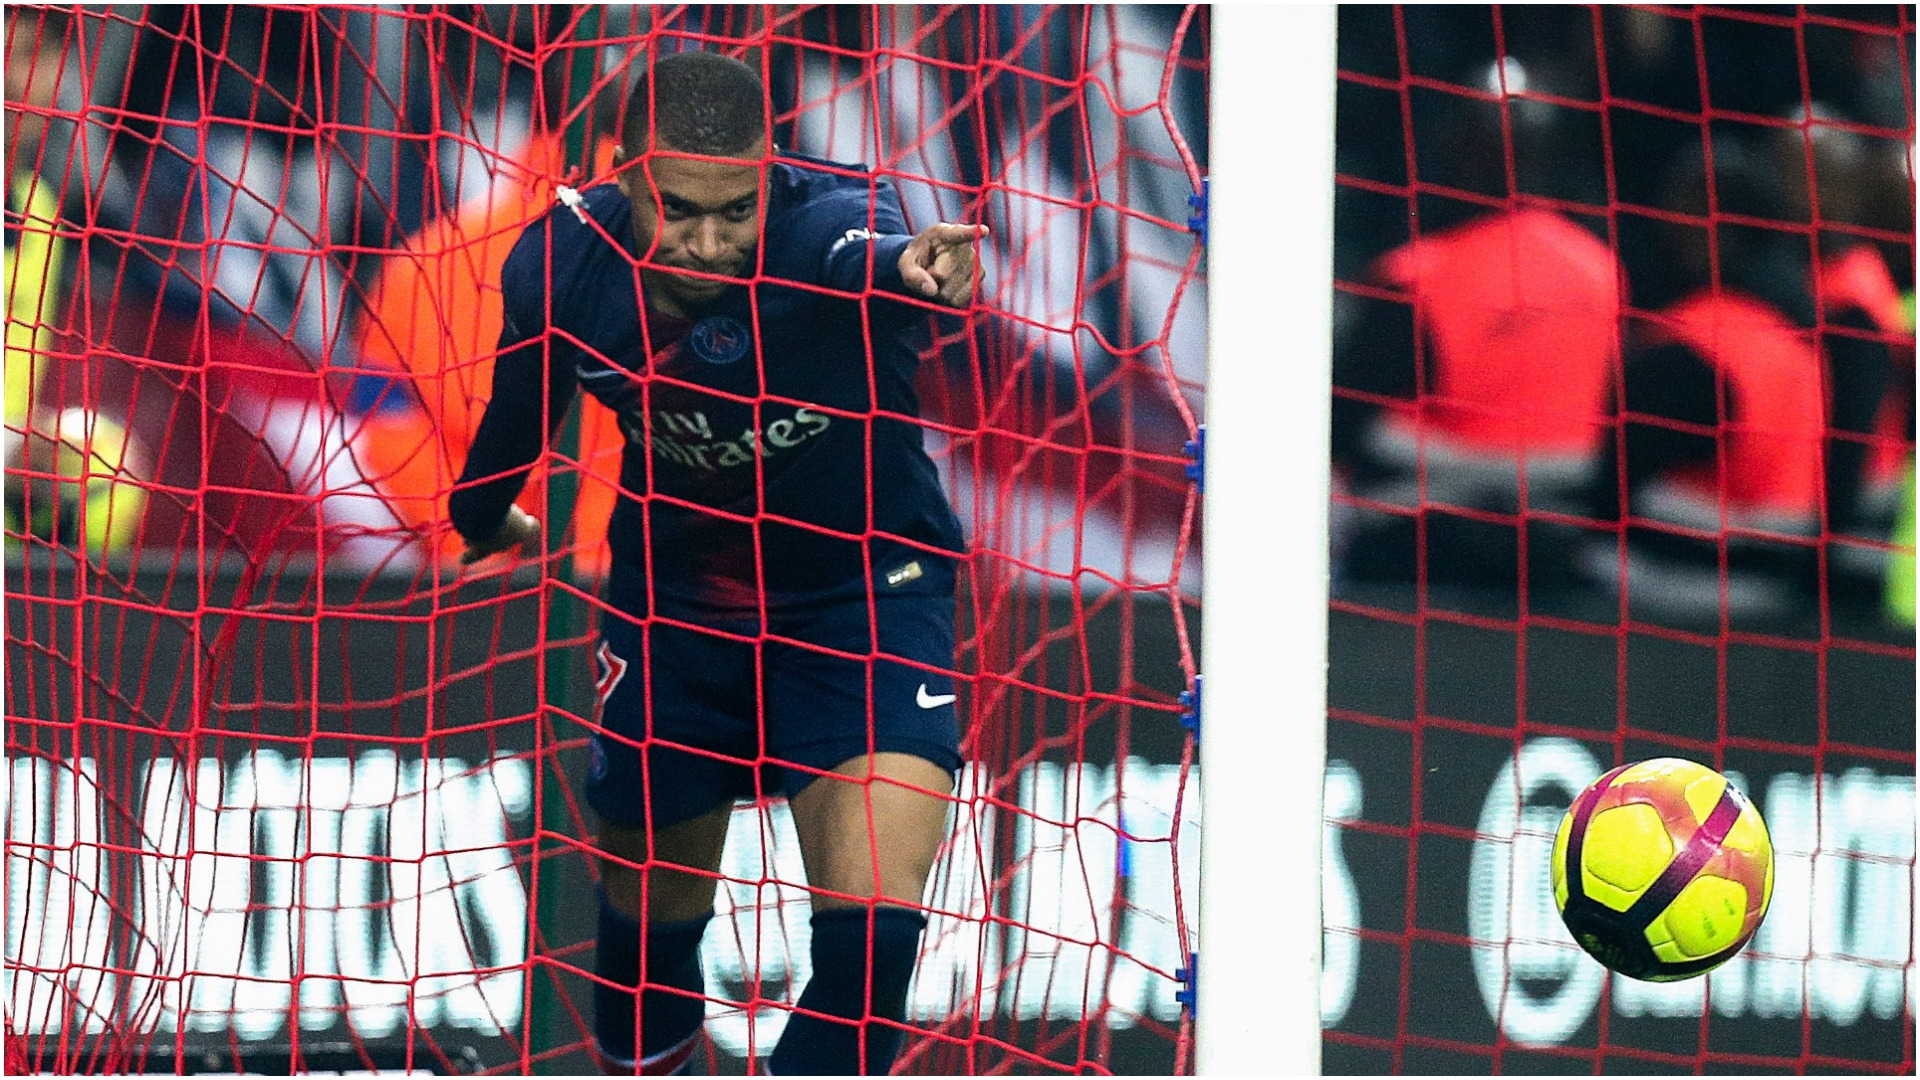 Mbappe ensures PSG make Ligue 1 history despite defeat